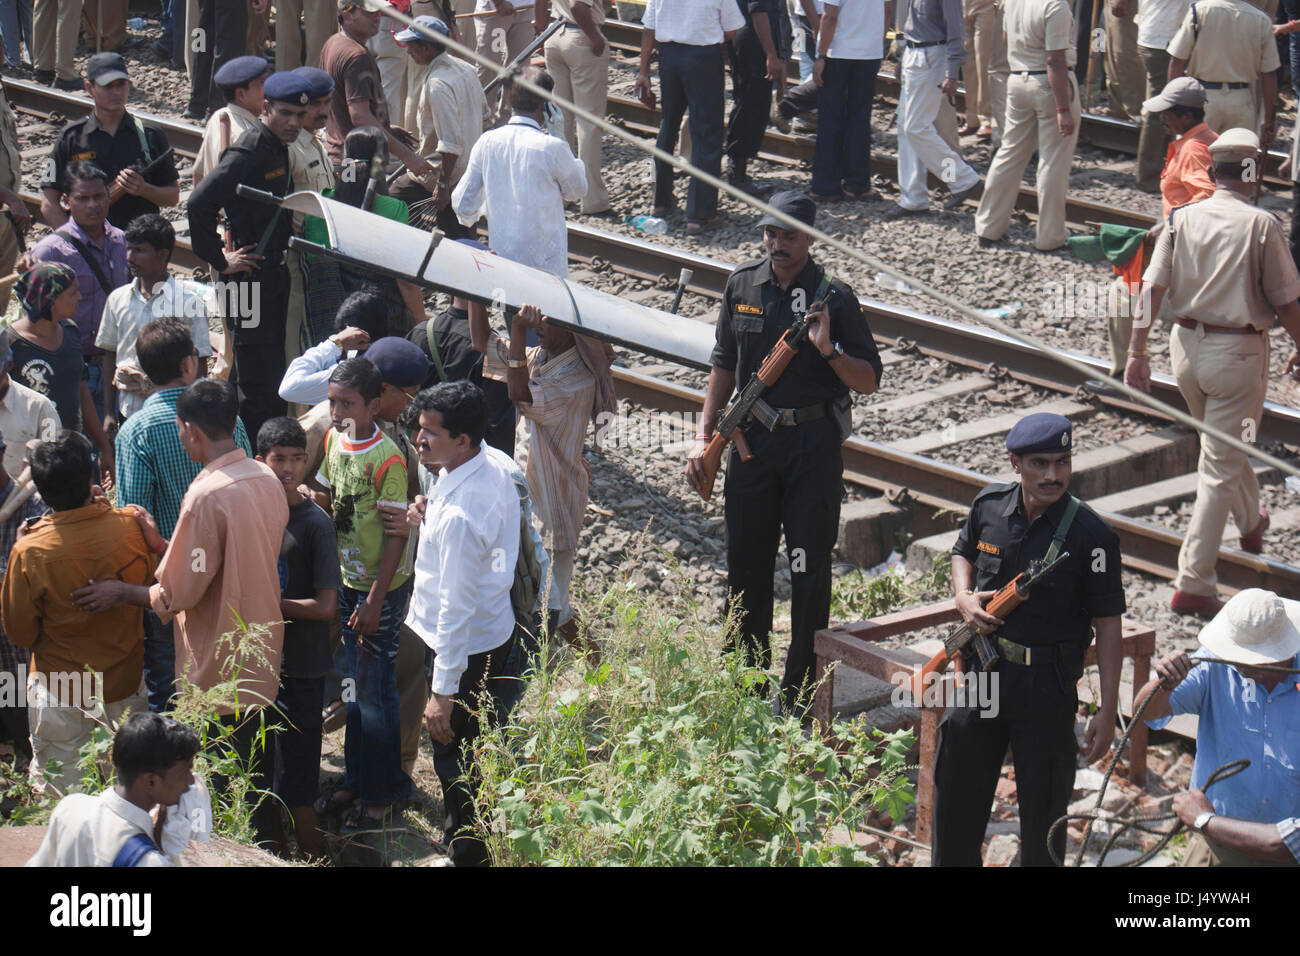 Security forces deployed water pipeline collapse over train, thane, maharashtra, india, asia - Stock Image